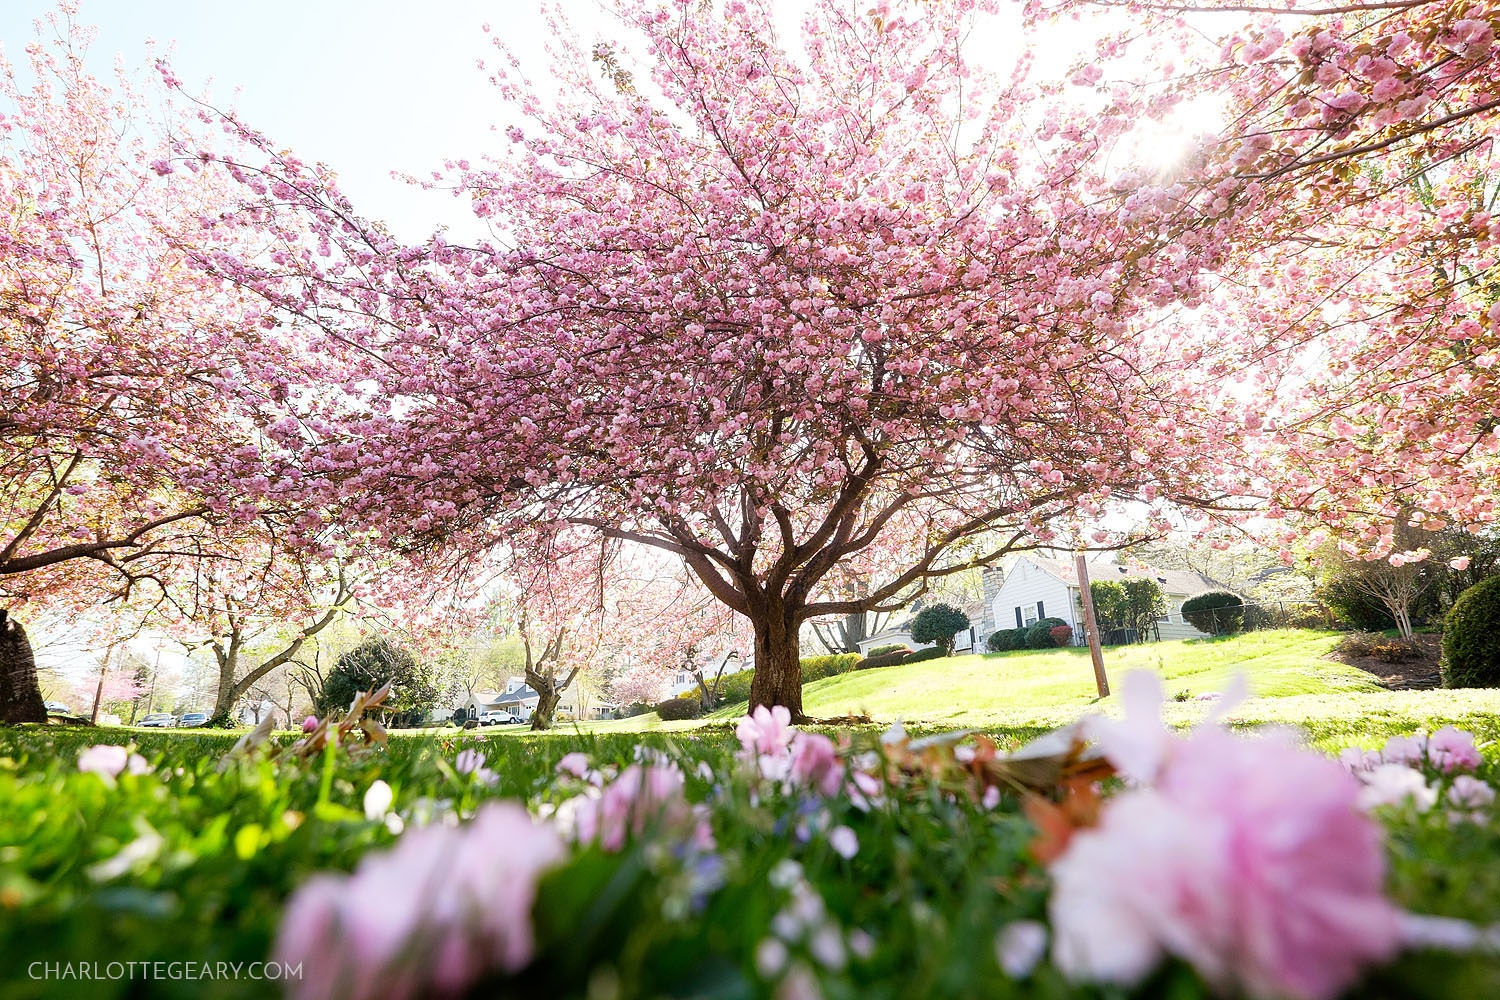 Kwanzan cherry blossoms in Annandale in Northern Virginia